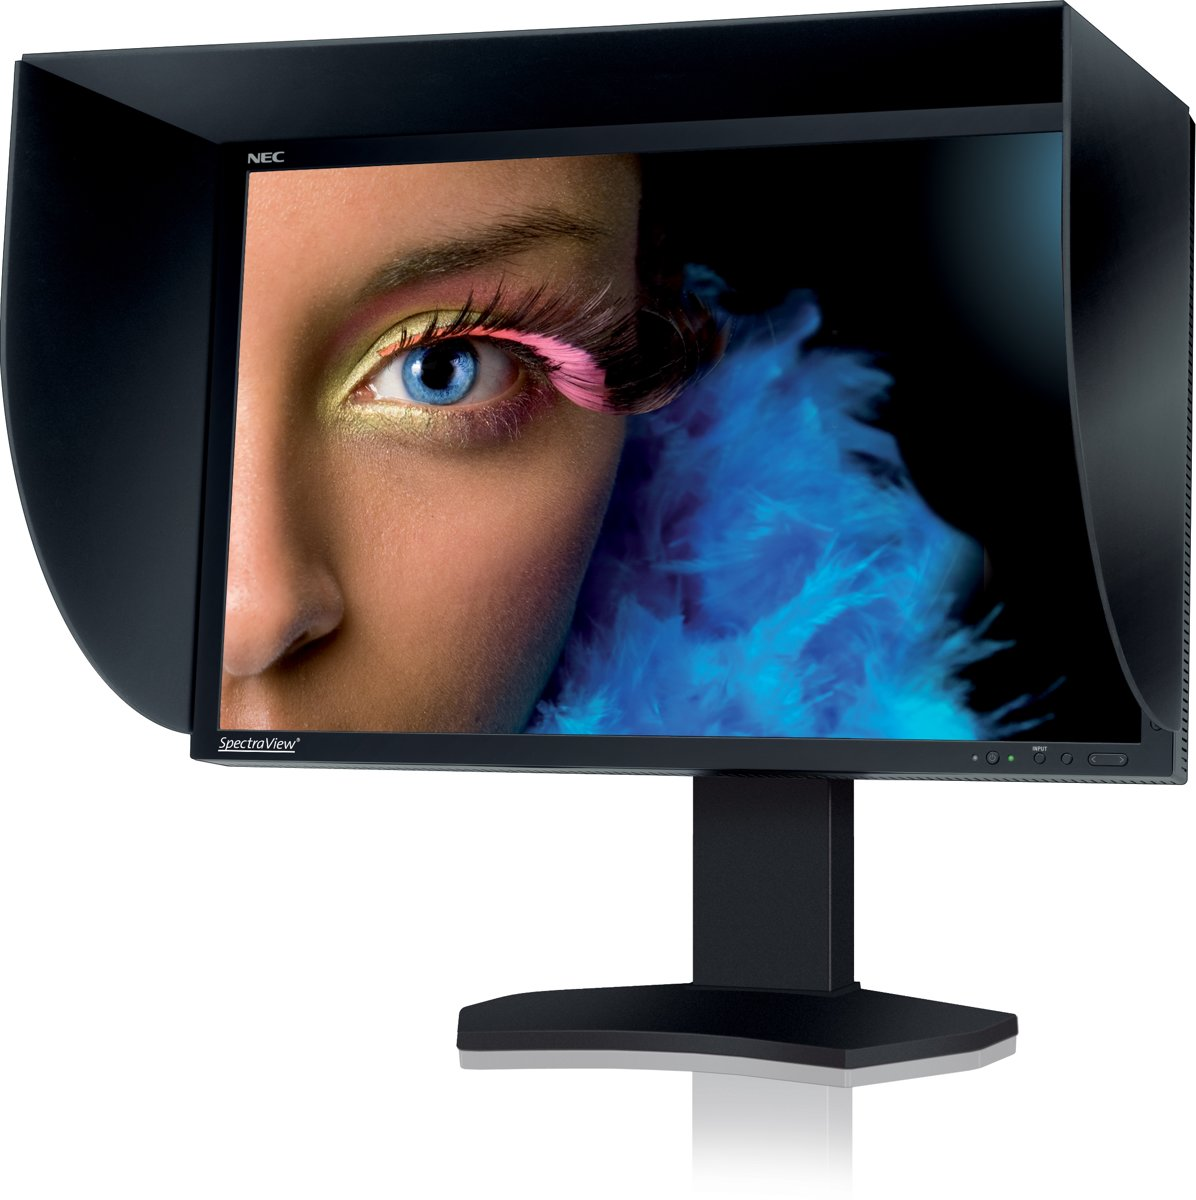 NEC Spectraview Reference 272 - Monitor